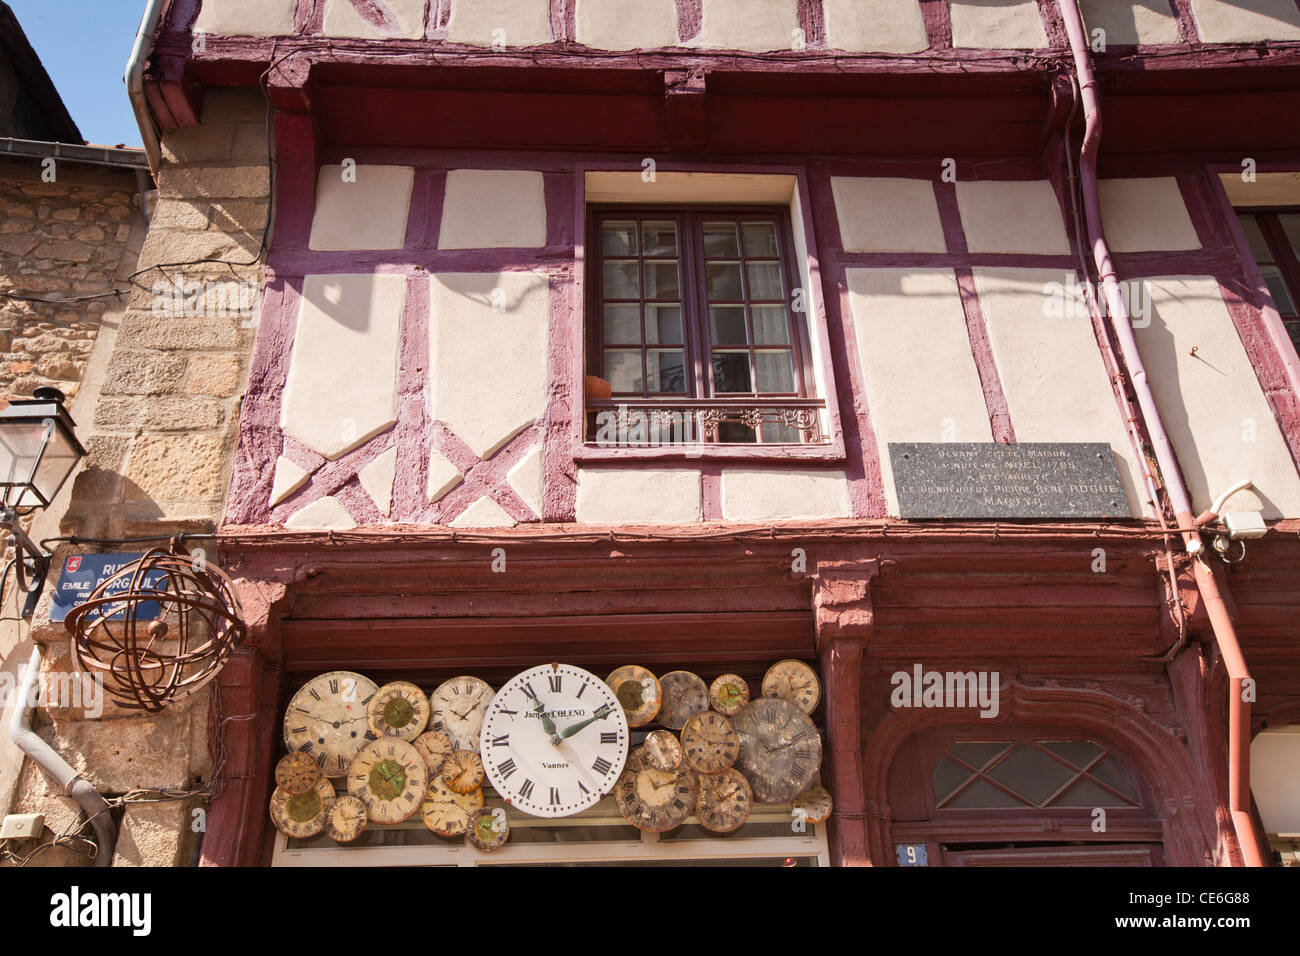 The half timbered building is home to a clockmaker in Vannes, Brittany, France. - Stock Image